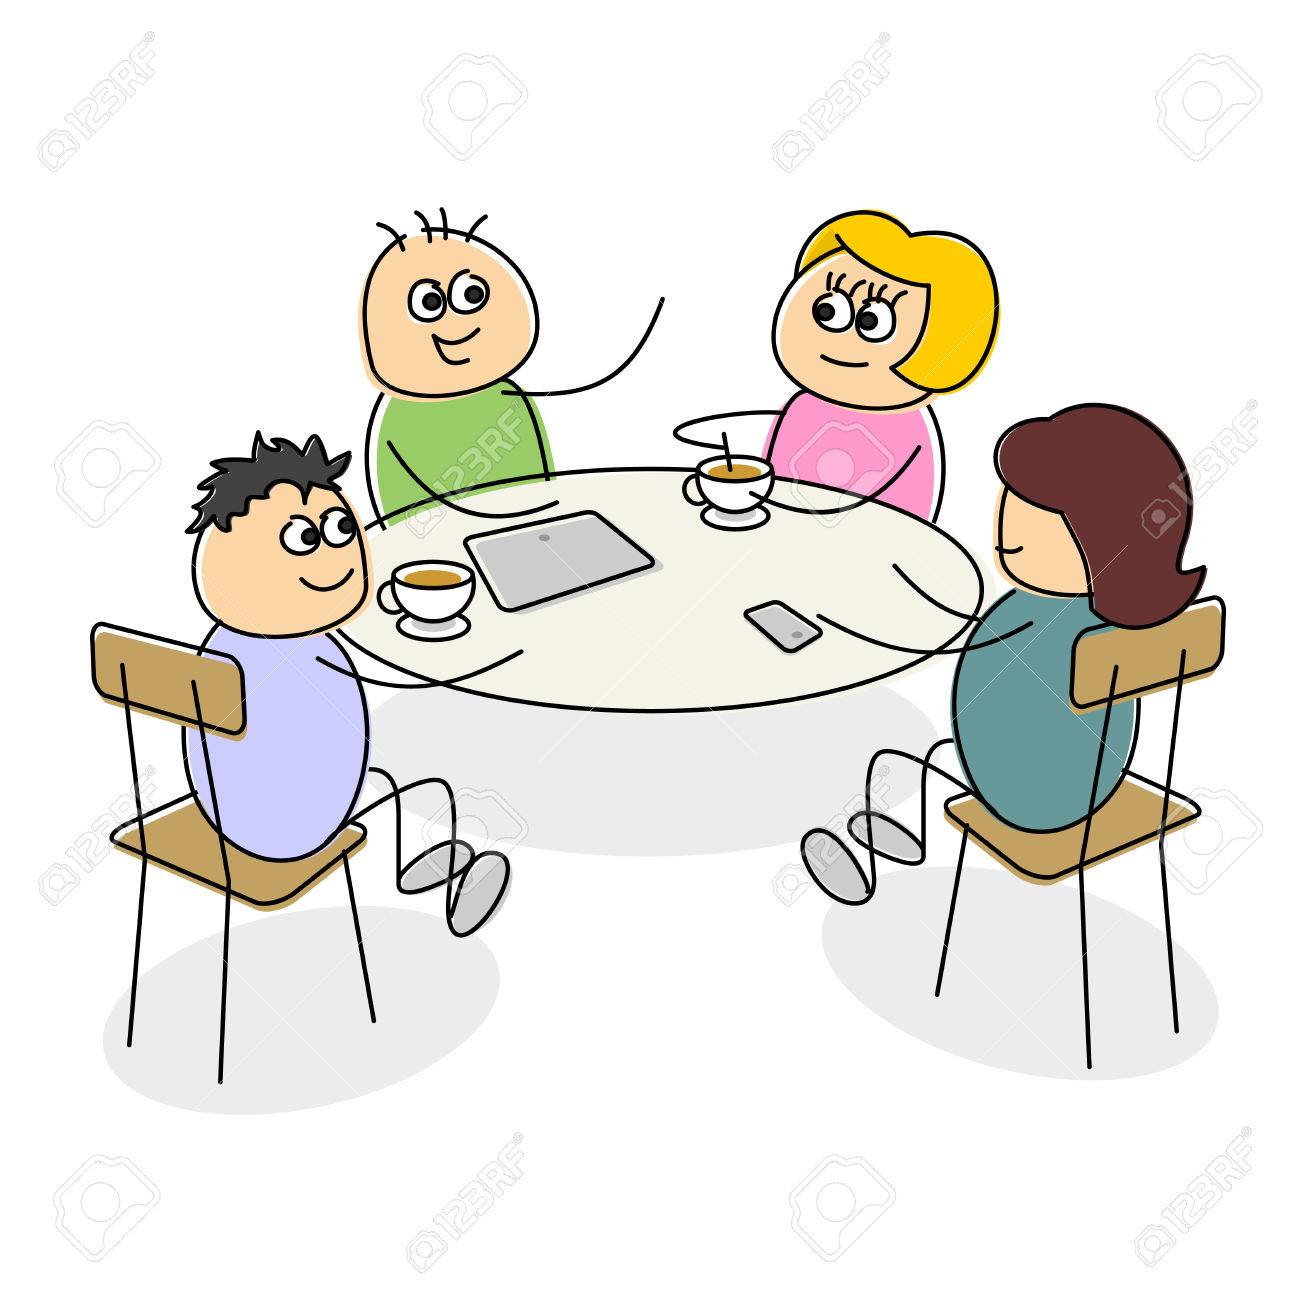 cartoon business meeting having coffee at a table as they smile